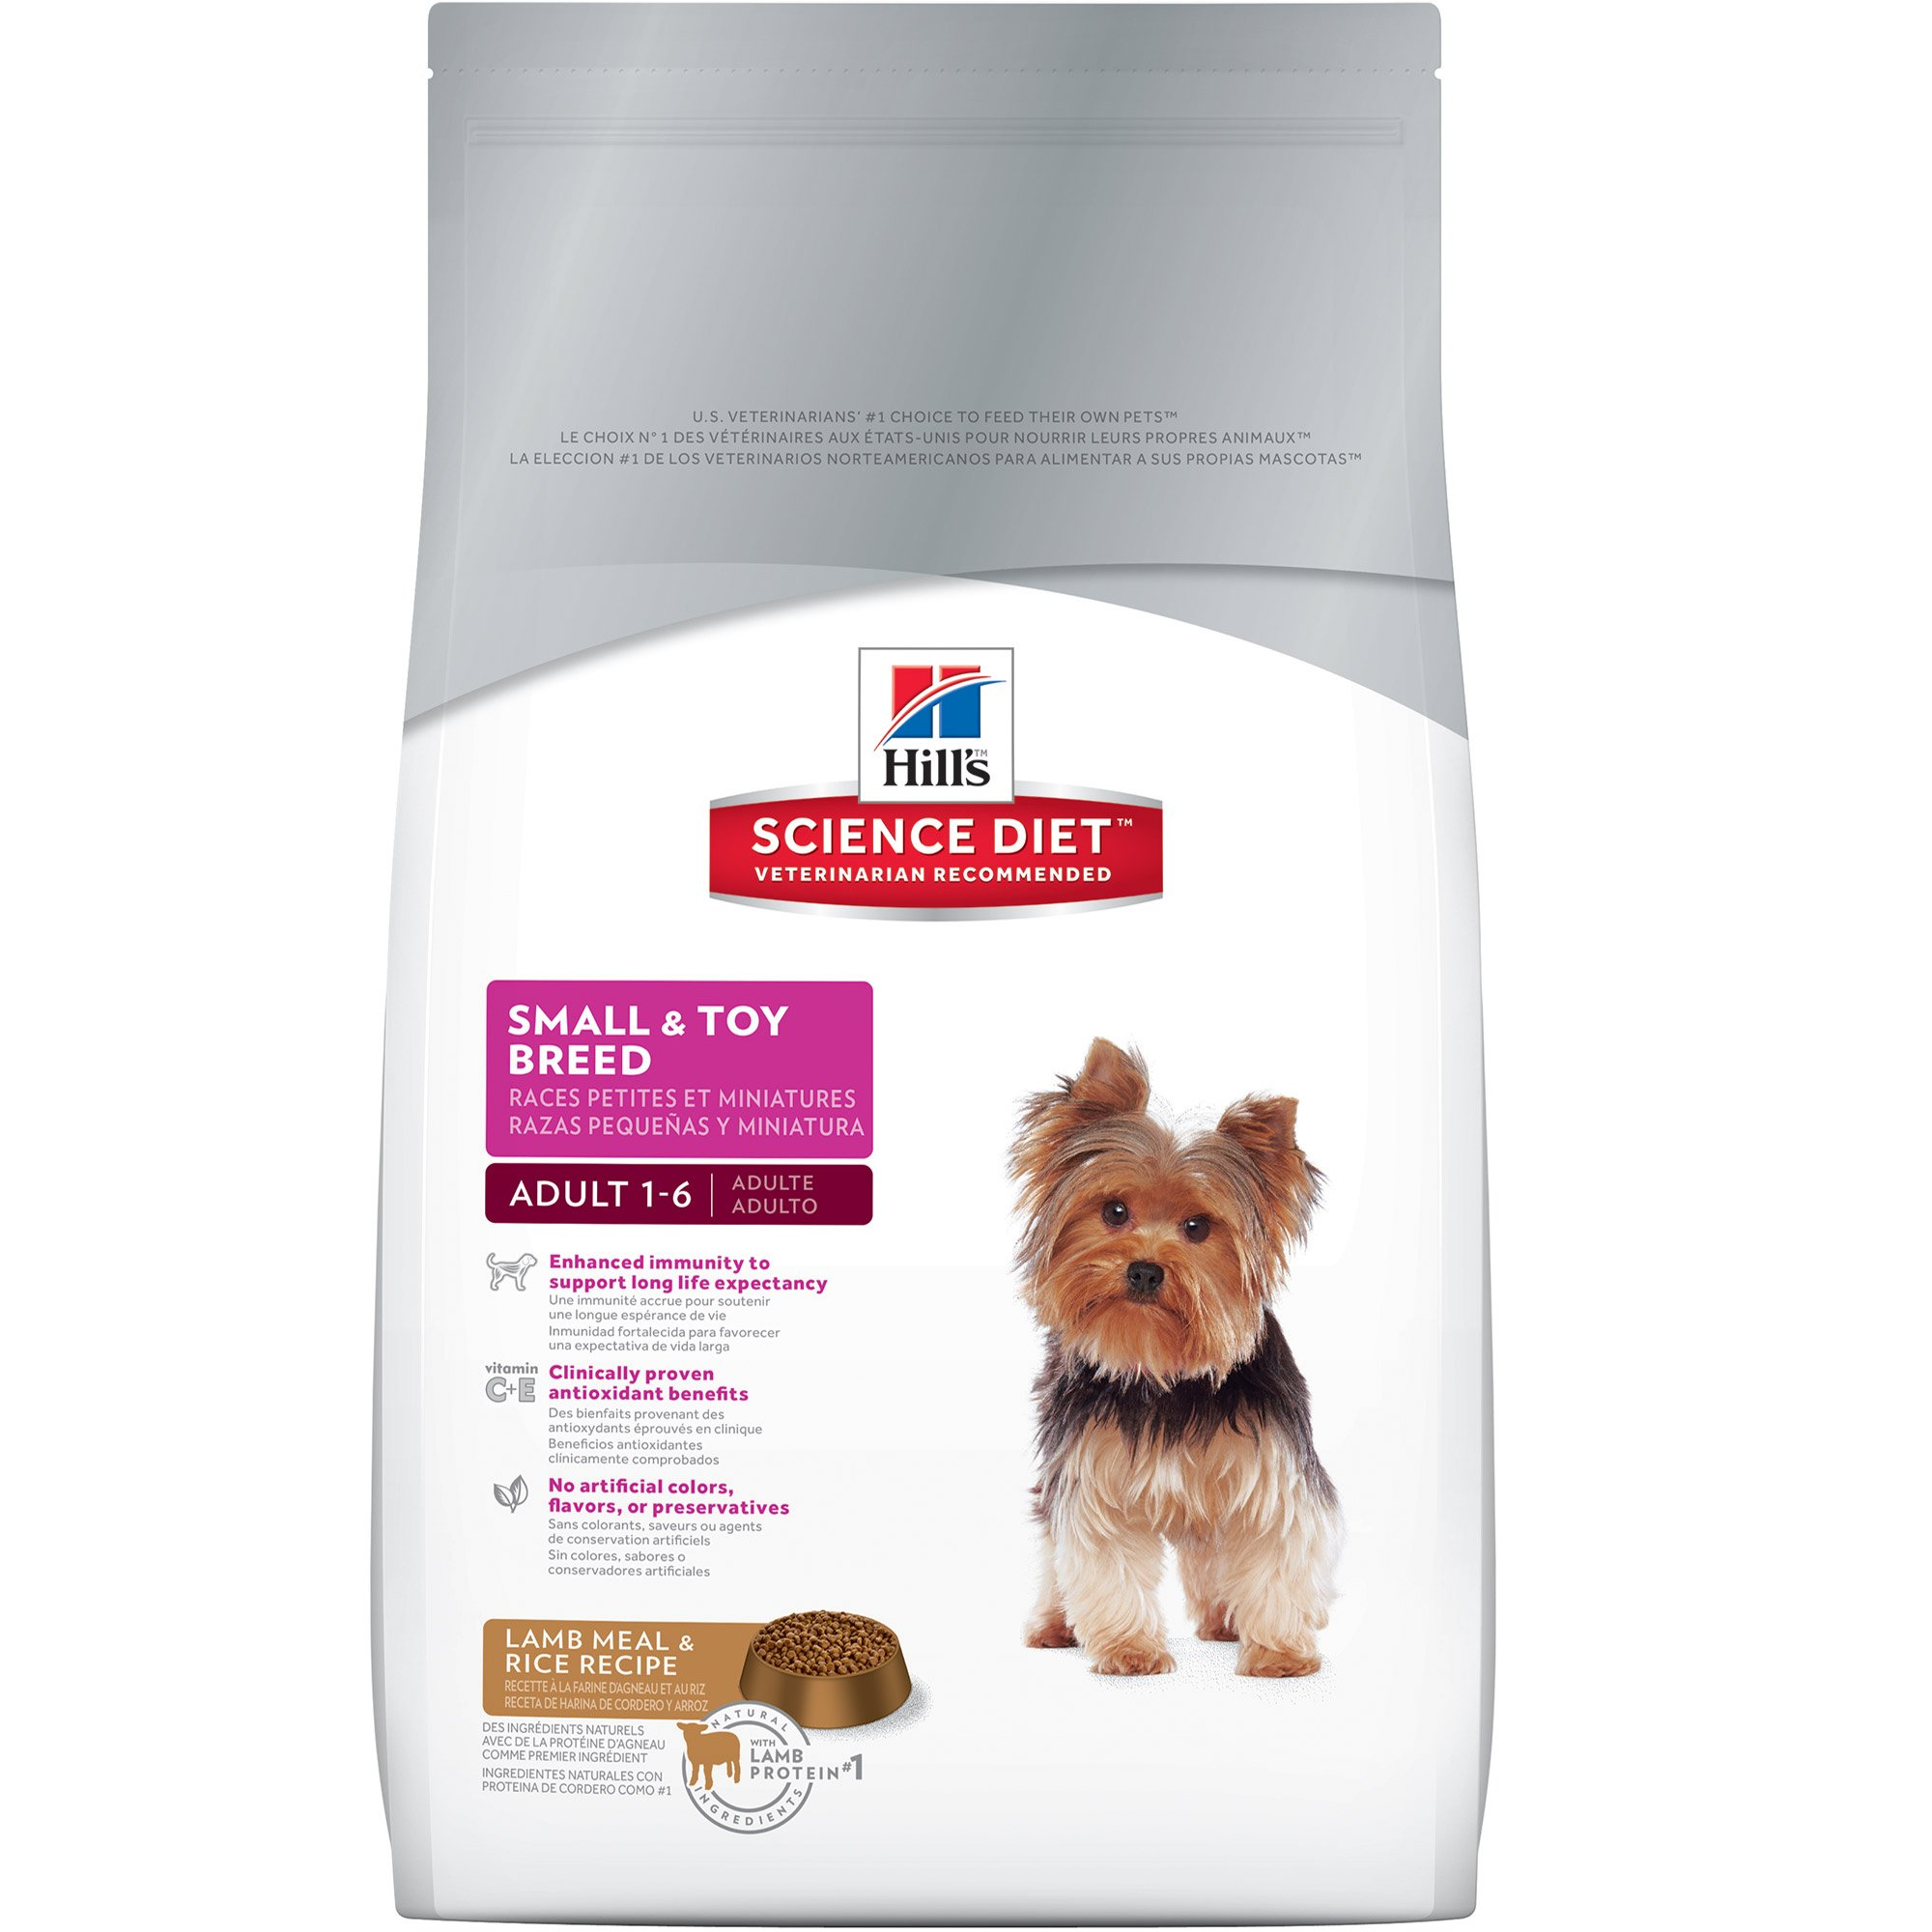 Hill's Science Diet Adult Small & Toy Breed Dog Food, Lamb Meal & Rice Recipe Dry Dog Food, 15.5 lb Bag